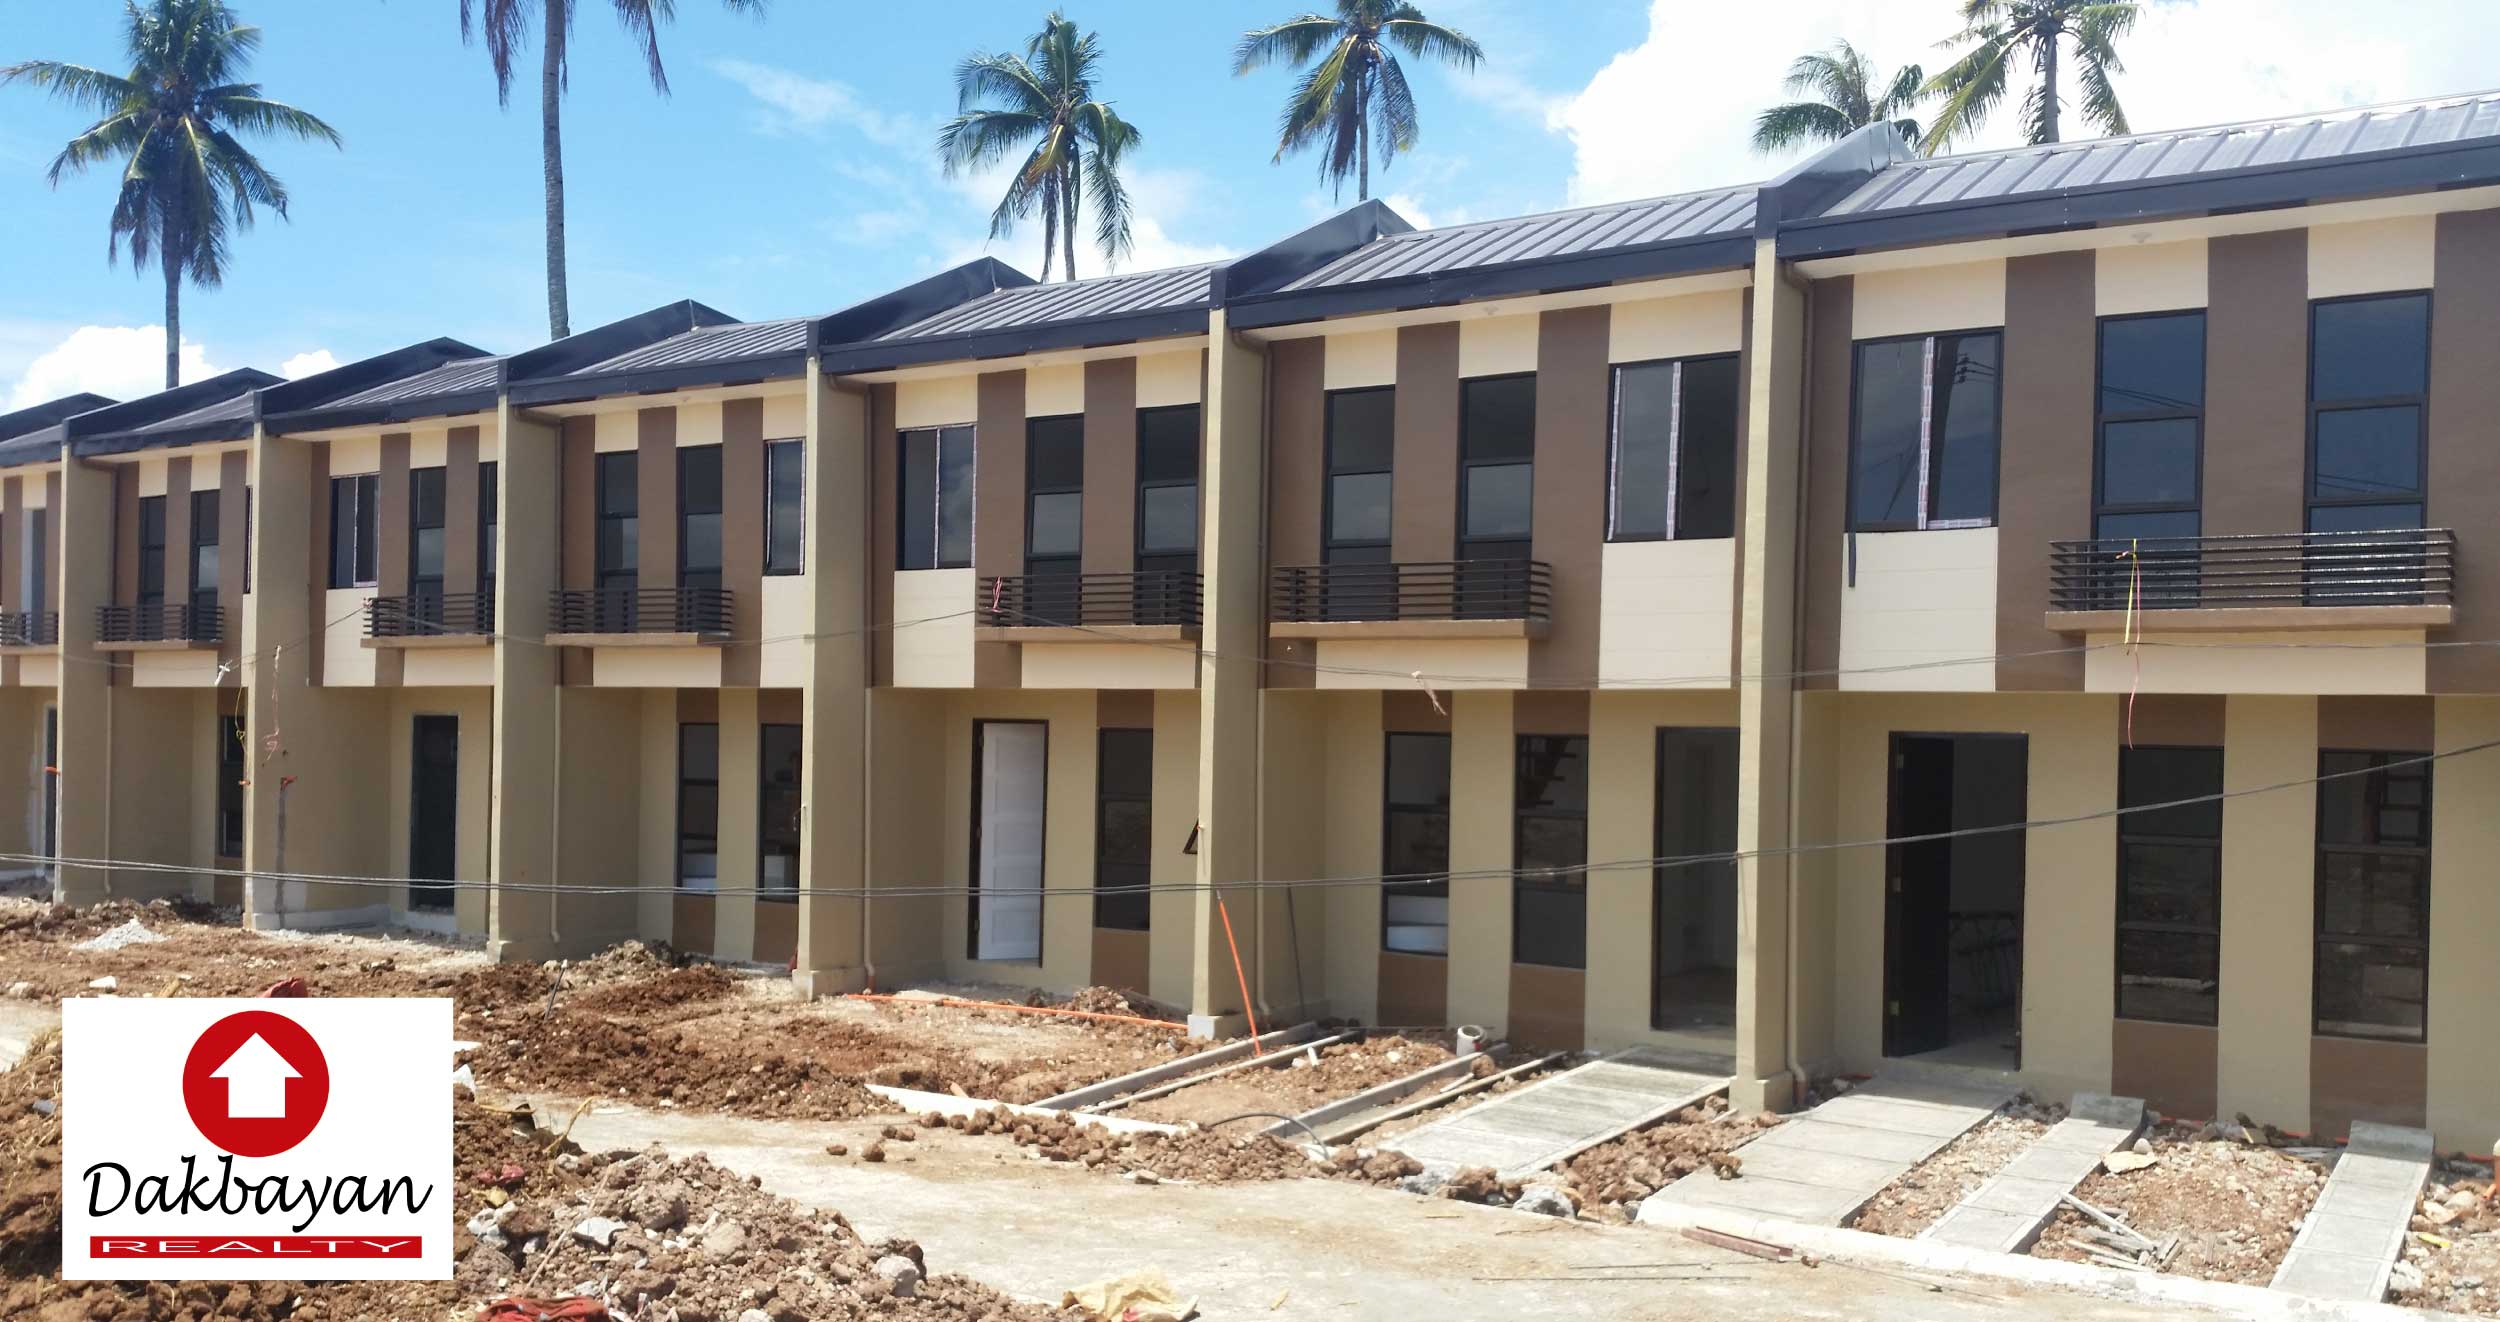 Dakbayan realty blog davao real estate local info for Townhouse construction cost